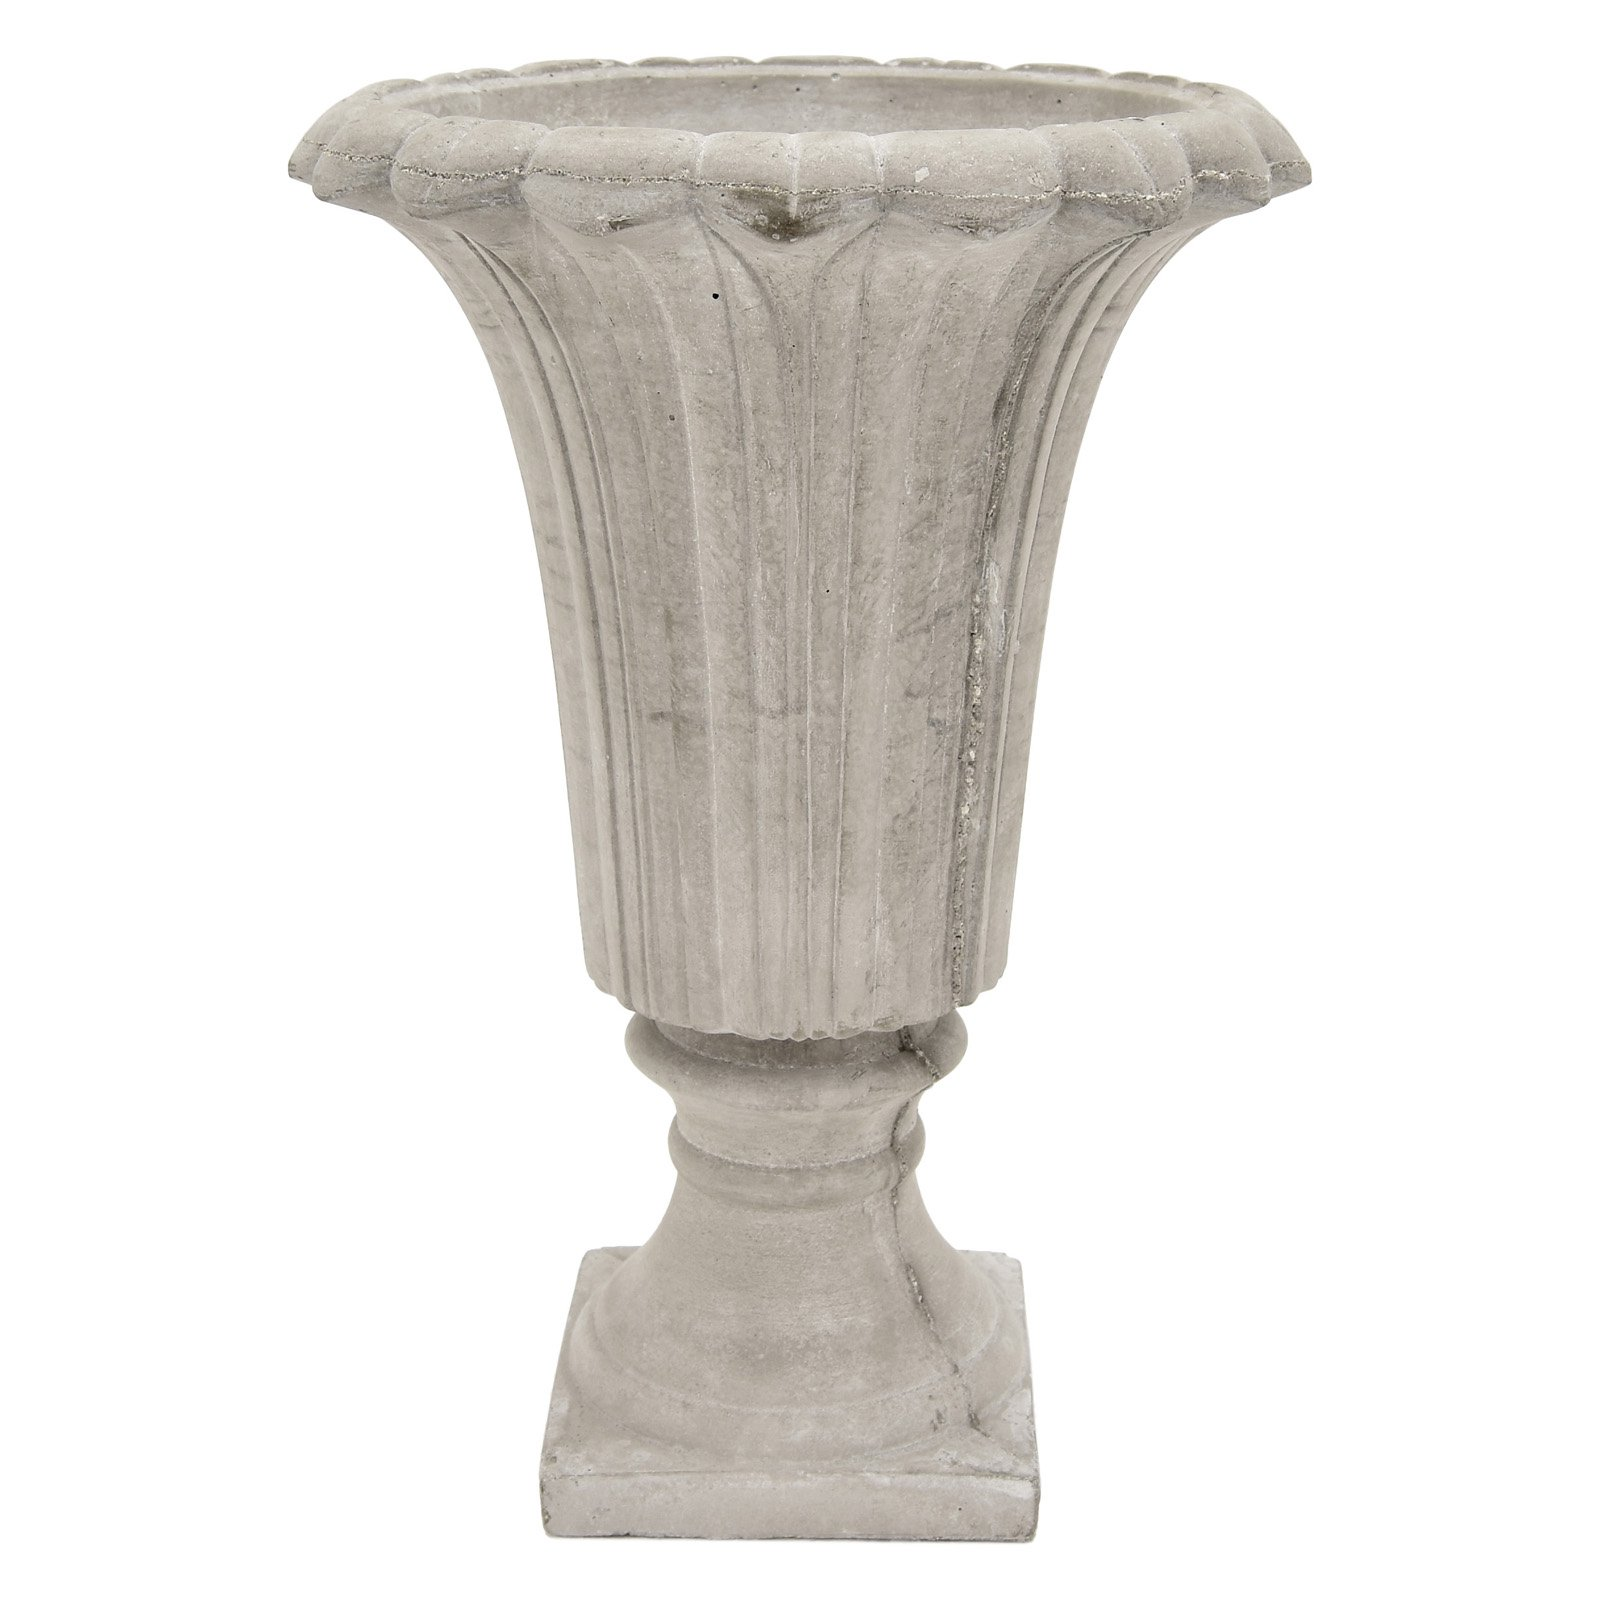 Three Hands Weathered Concrete Footed Garden Urn by Three Hands Corp.